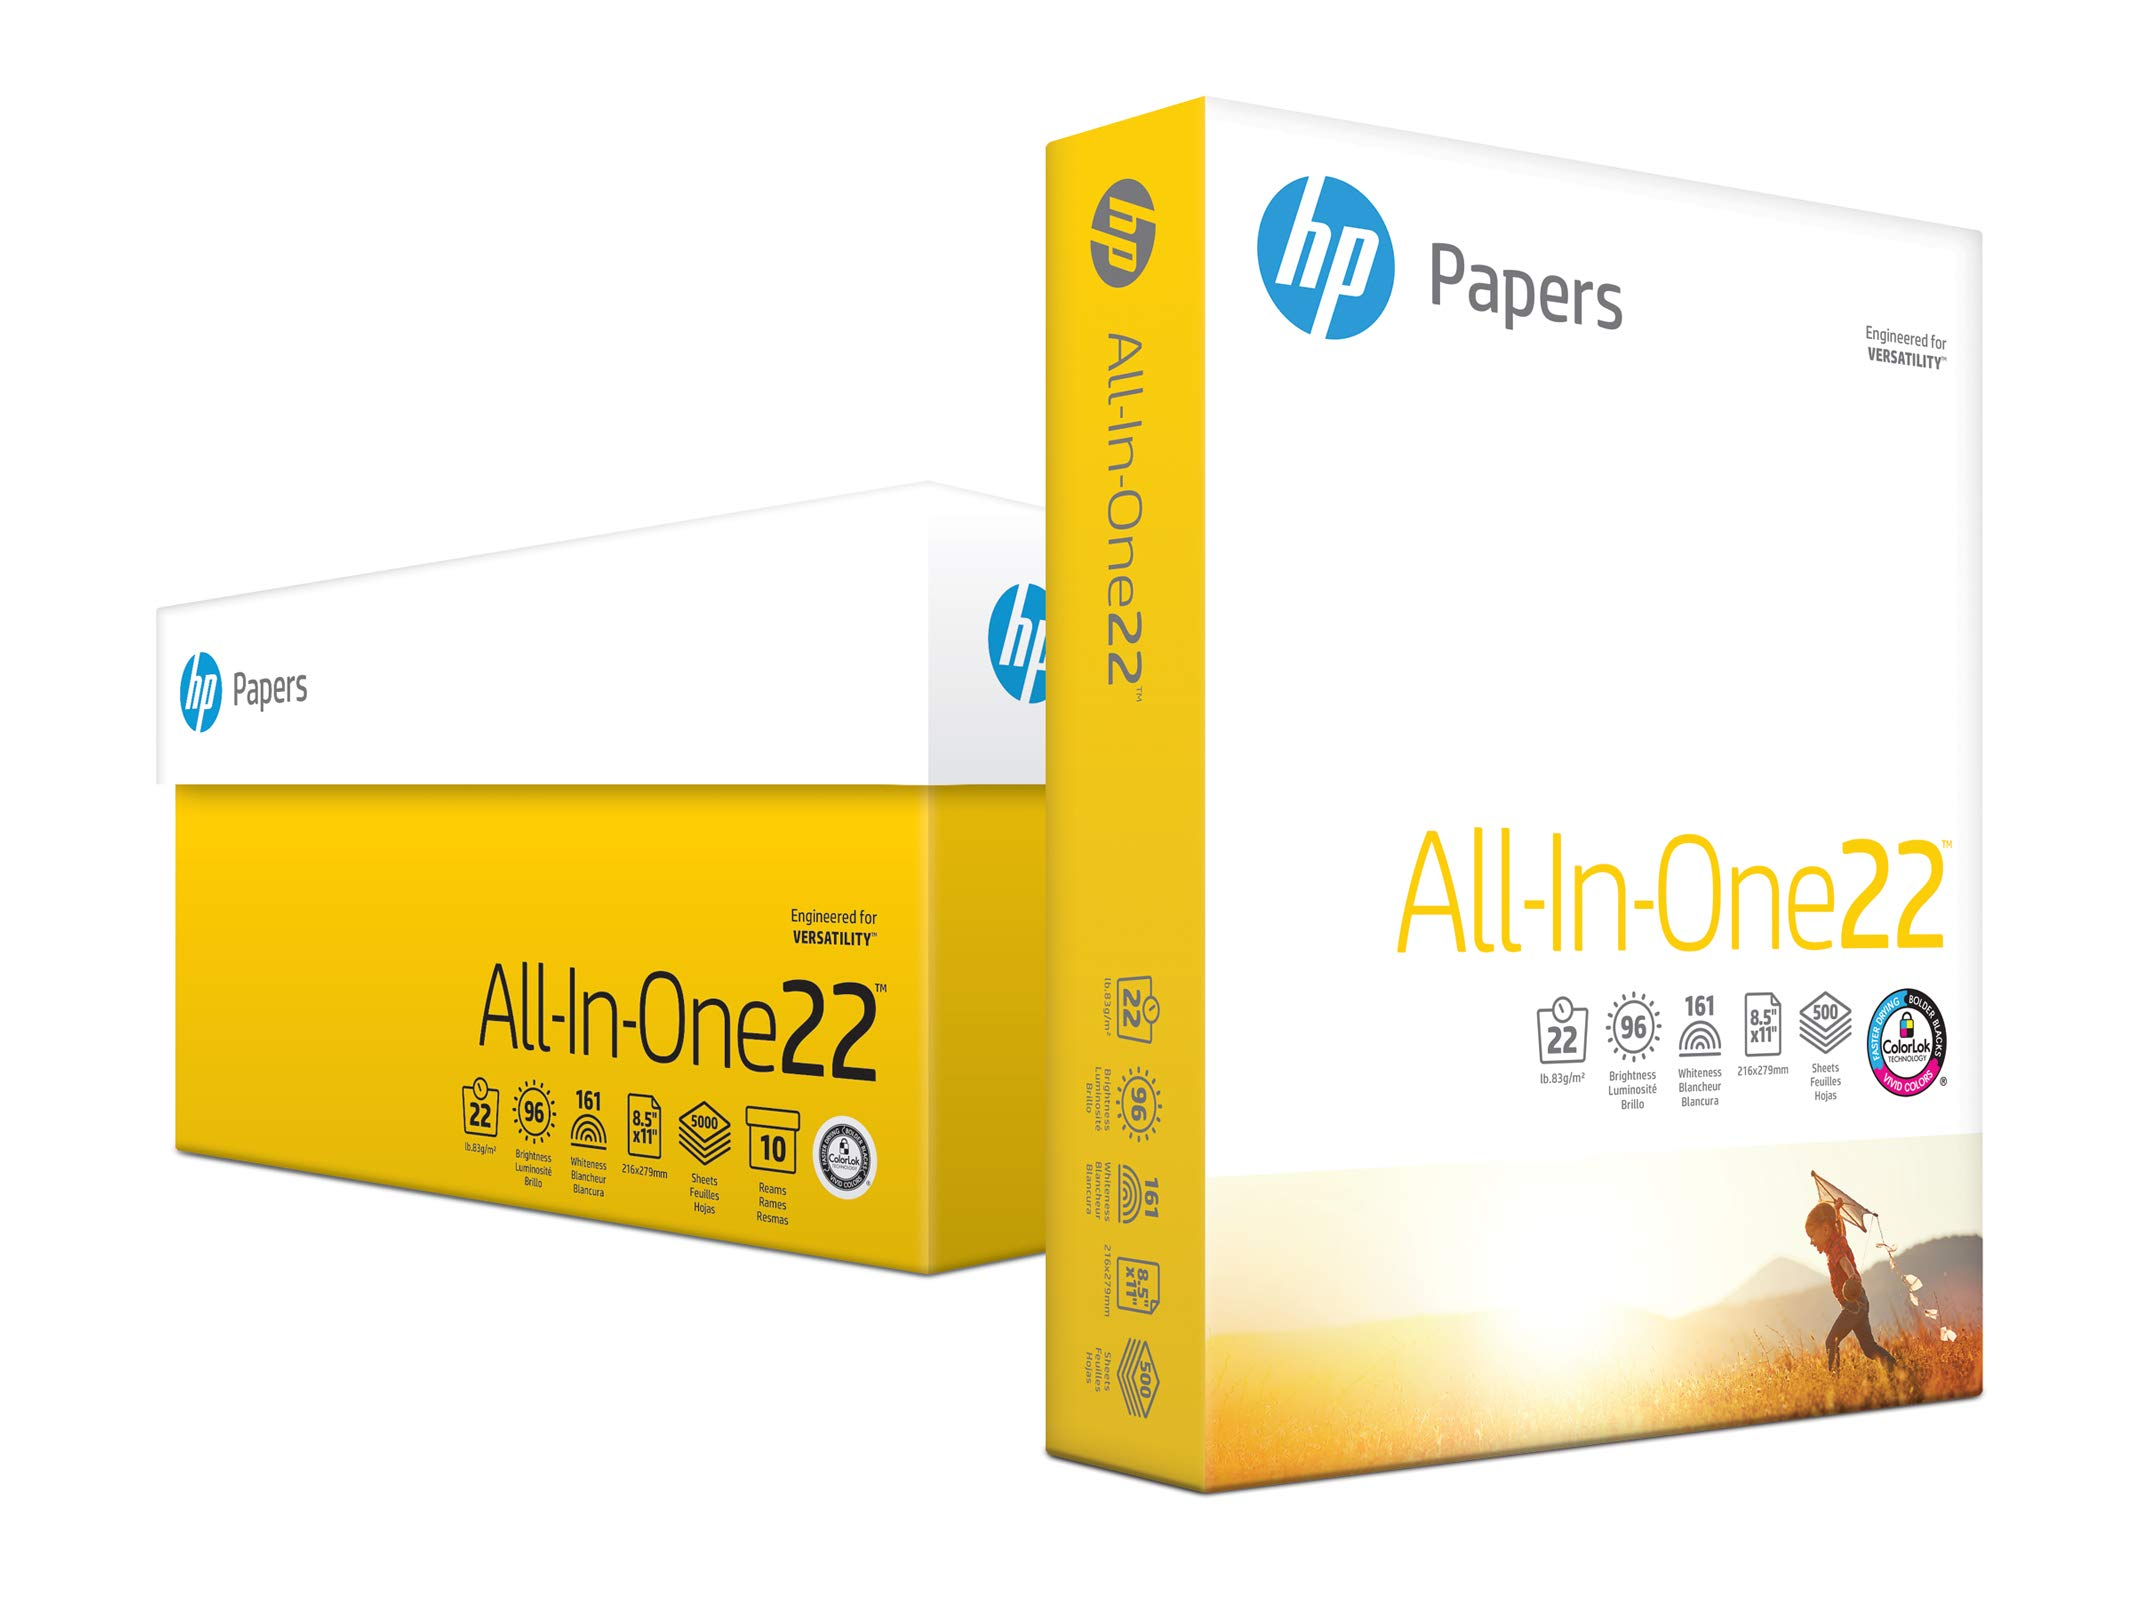 HP Printer Paper, All In One22, 8.5 x 11 Paper, Letter Size, 22lb Paper, 96 Bright, 5, 000 Sheets/ 10 Ream Carton (207010C) Acid Free Paper by HP Paper